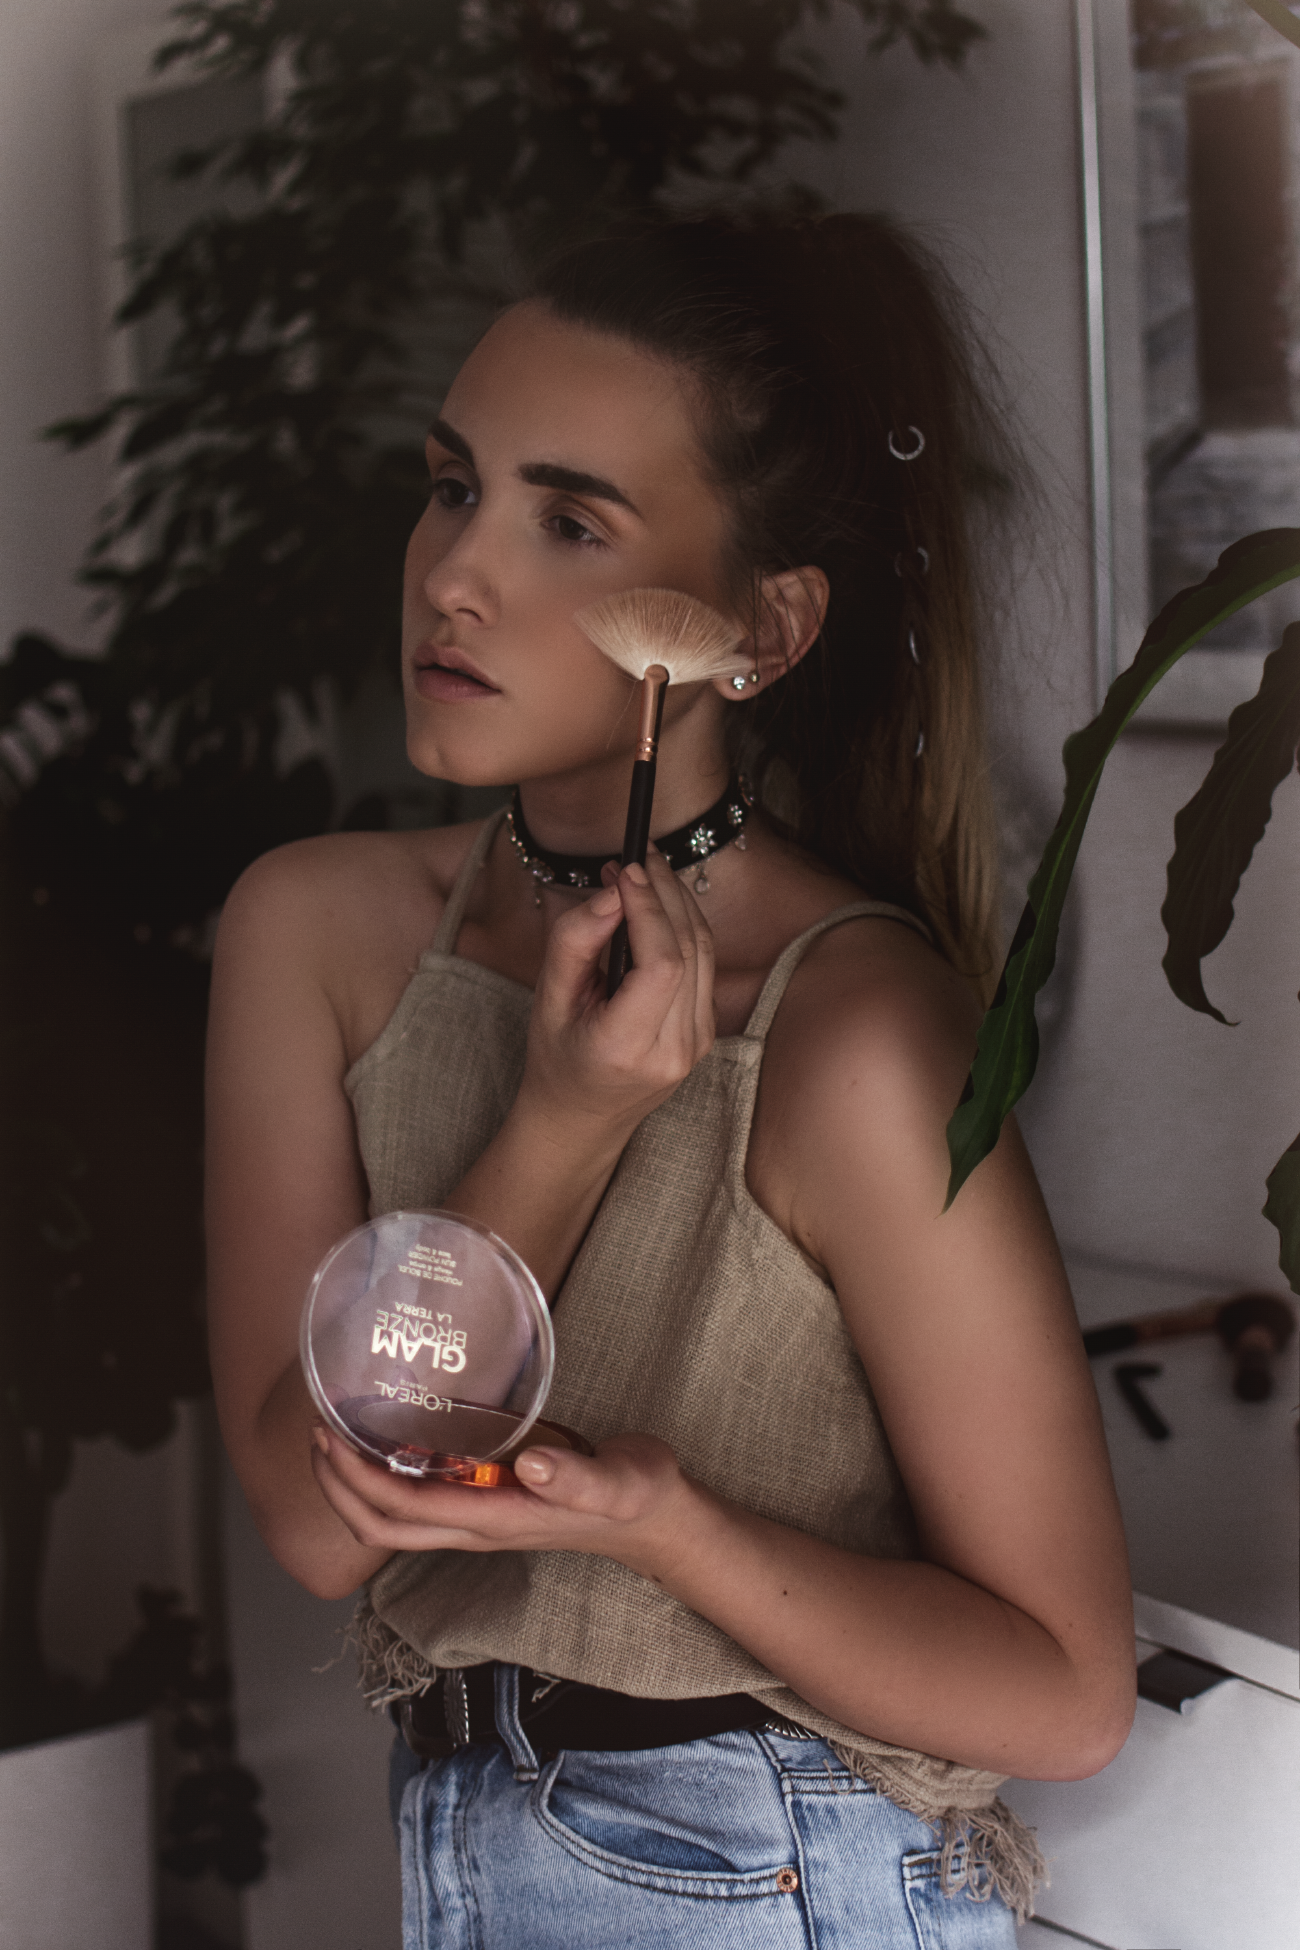 How to apply bronzer sunkissed tan - L'Oreal Paris @fleurdemode